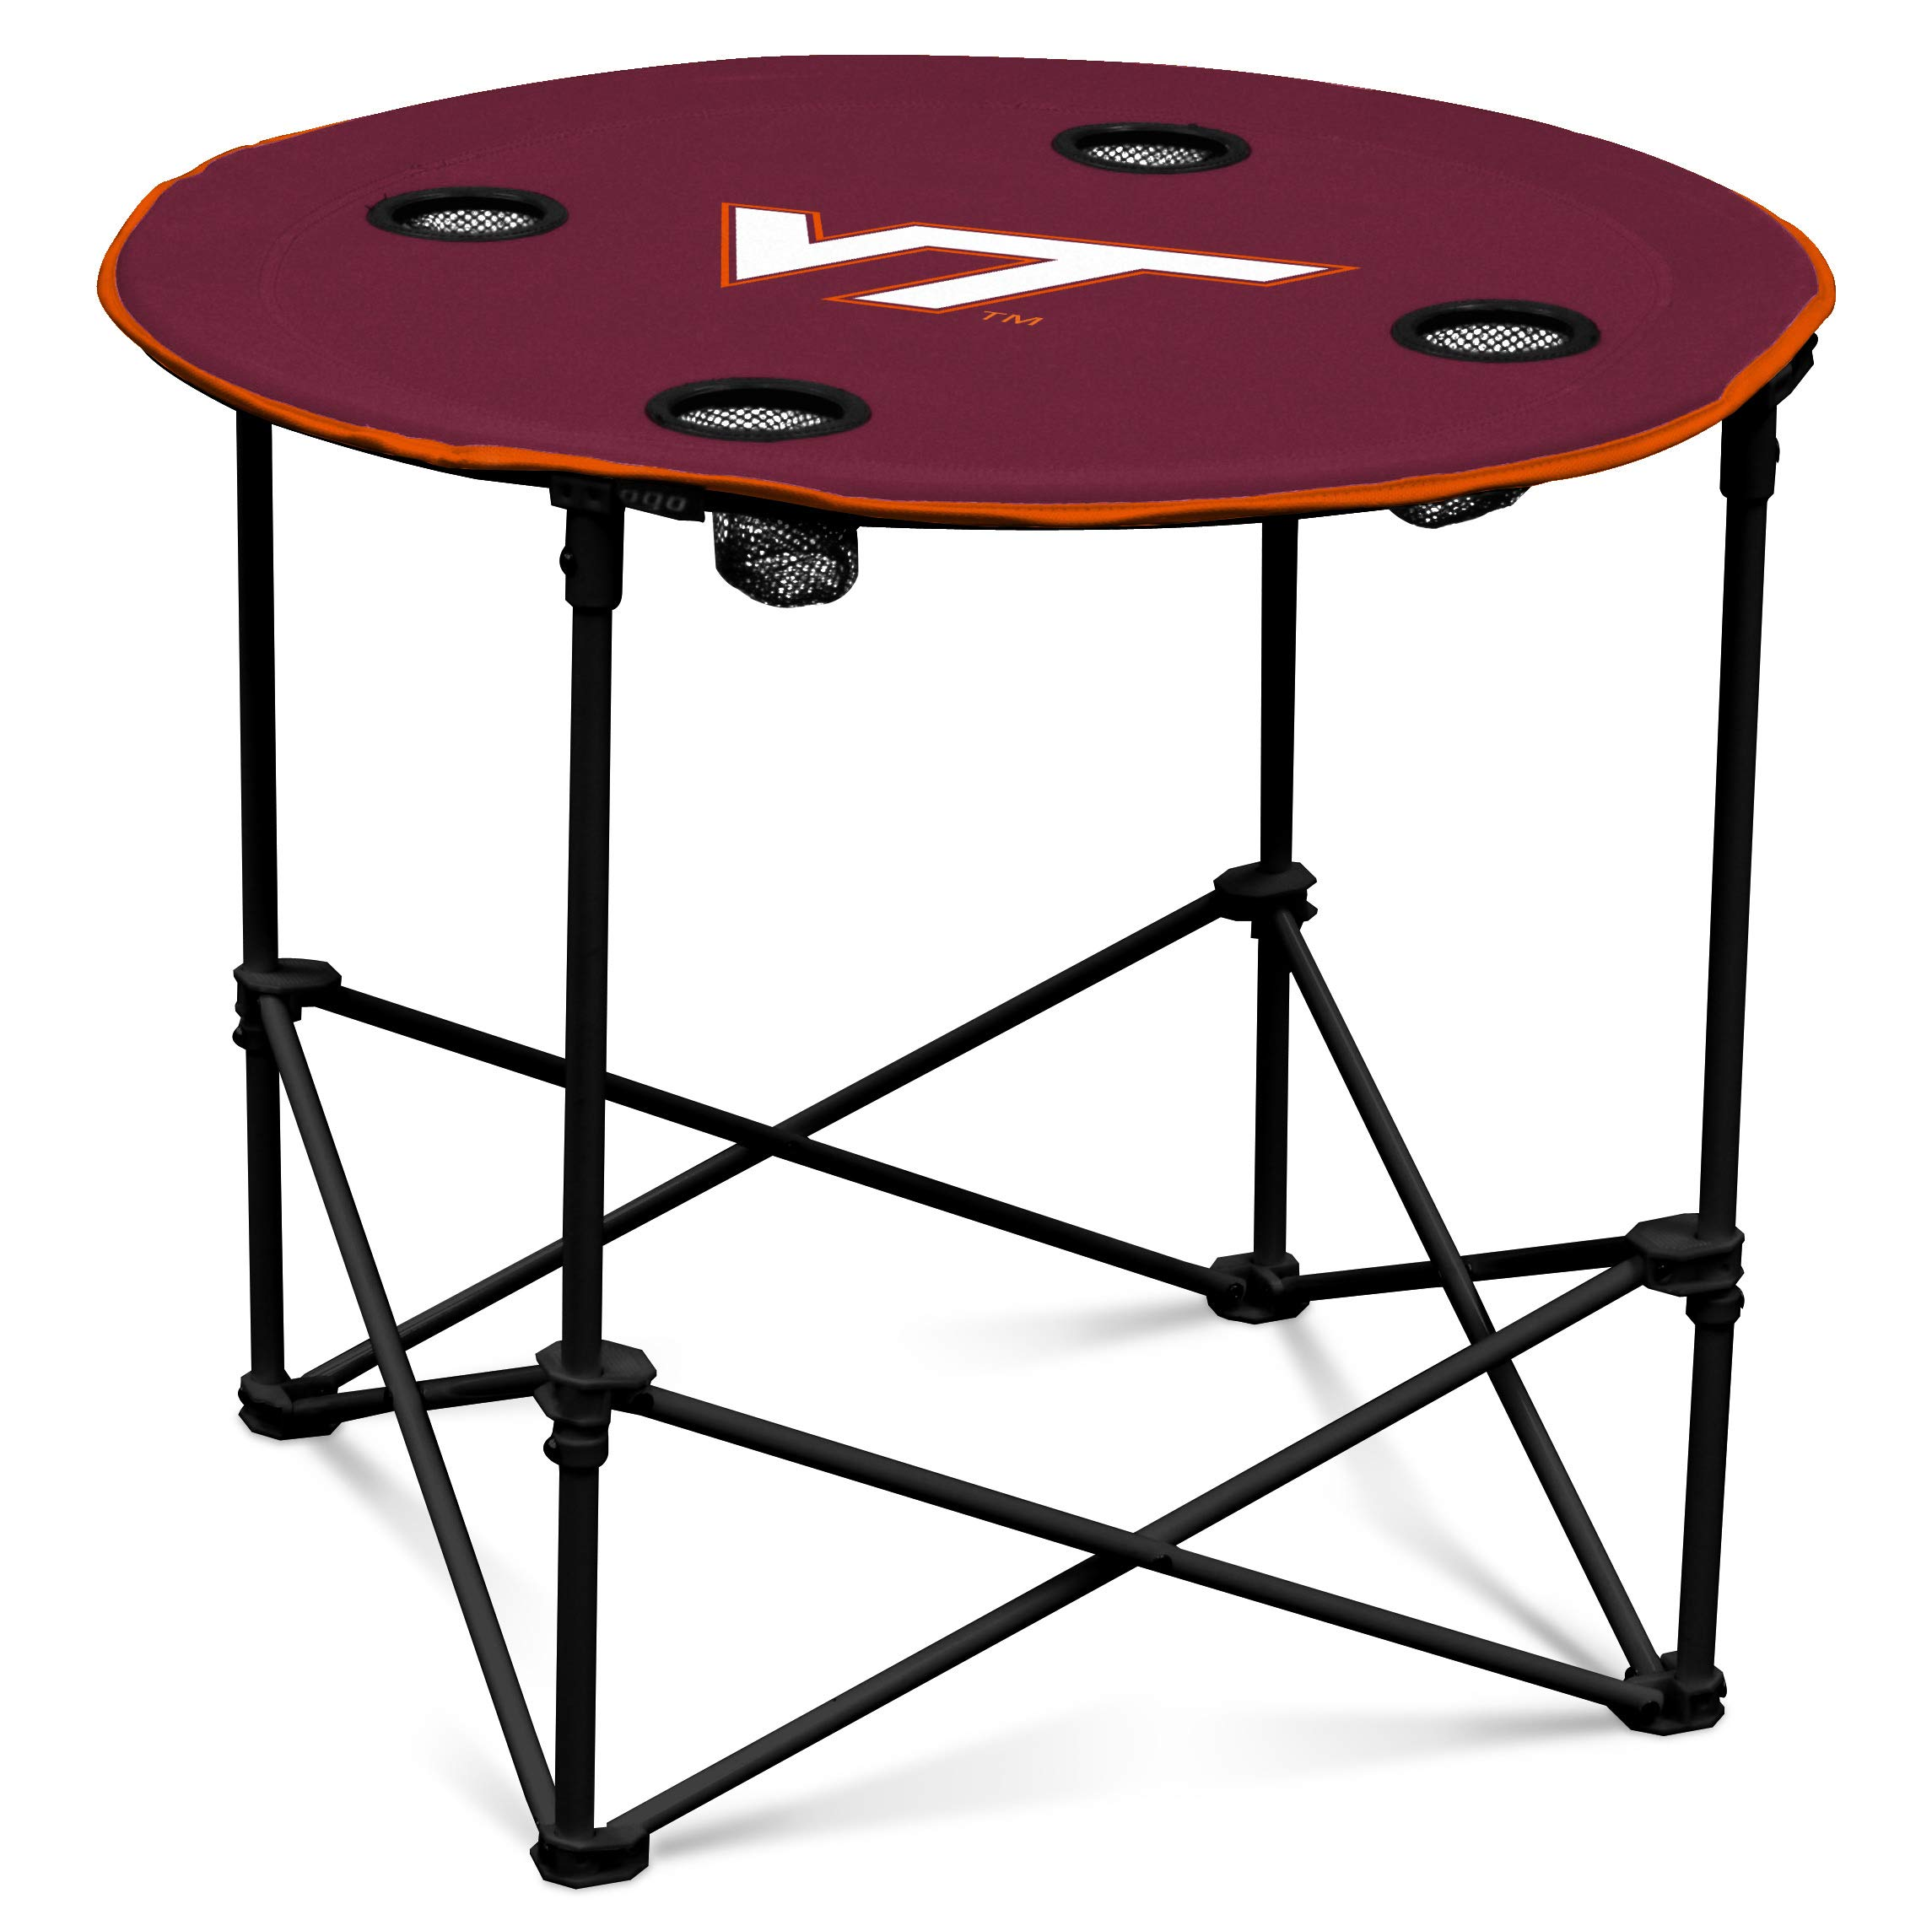 VA Tech Hokies Collapsible Round Table with 4 Cup Holders and Carry Bag by Logo Brands